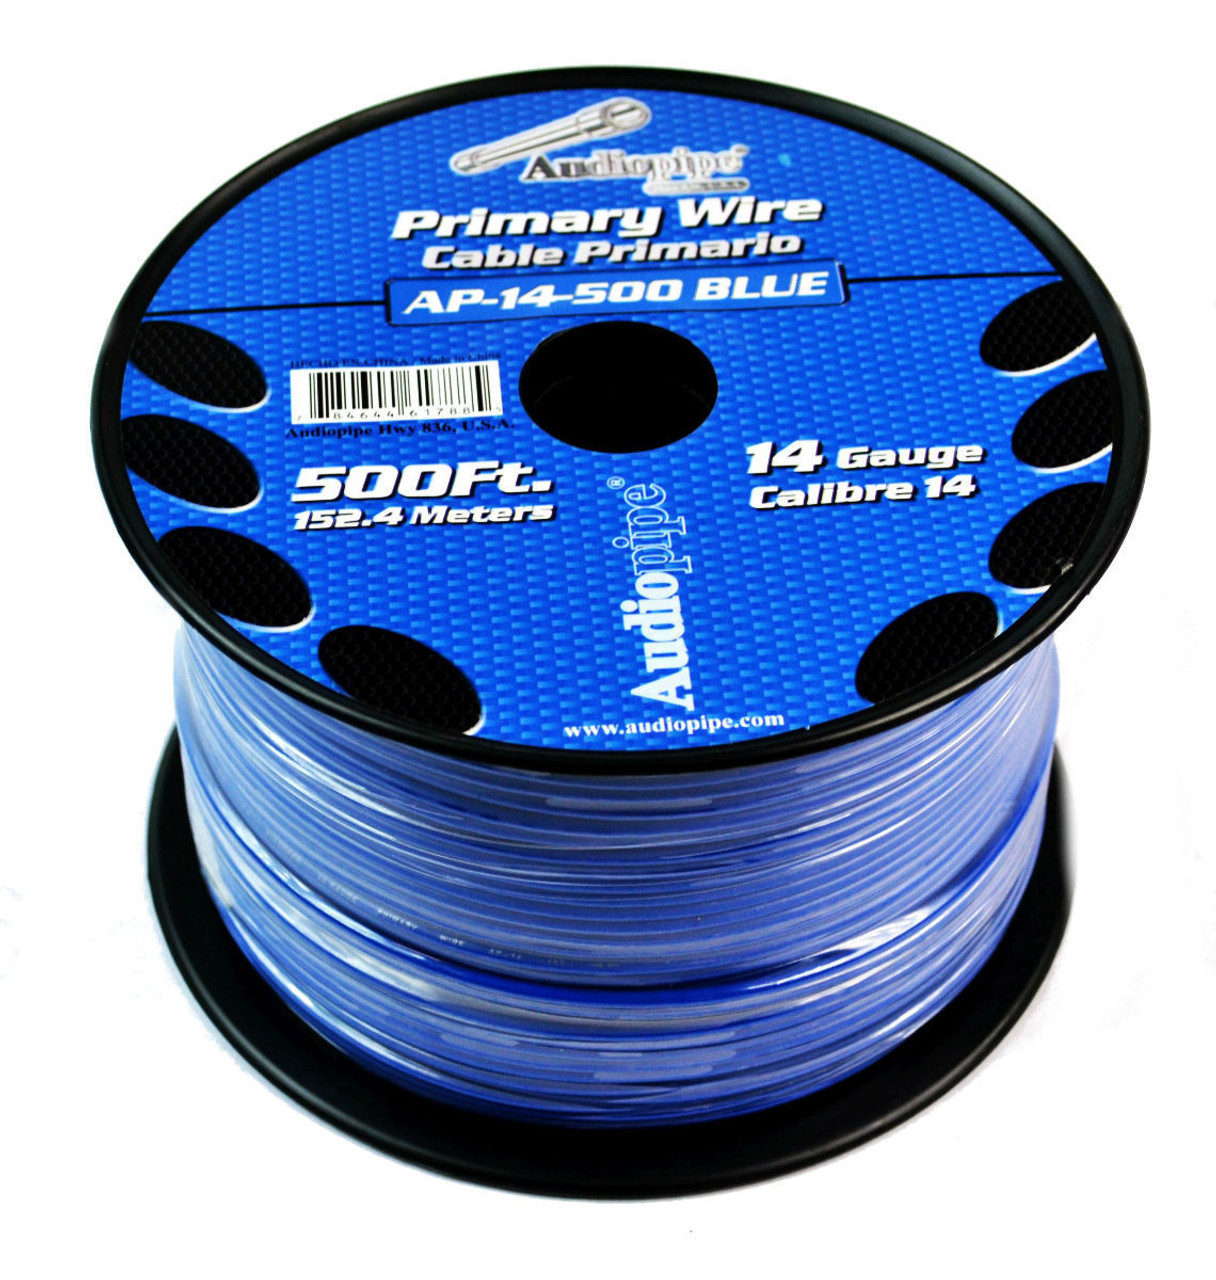 14 ga 500 blue audiopipe car audio home primary remote wire [ 1140 x 1200 Pixel ]